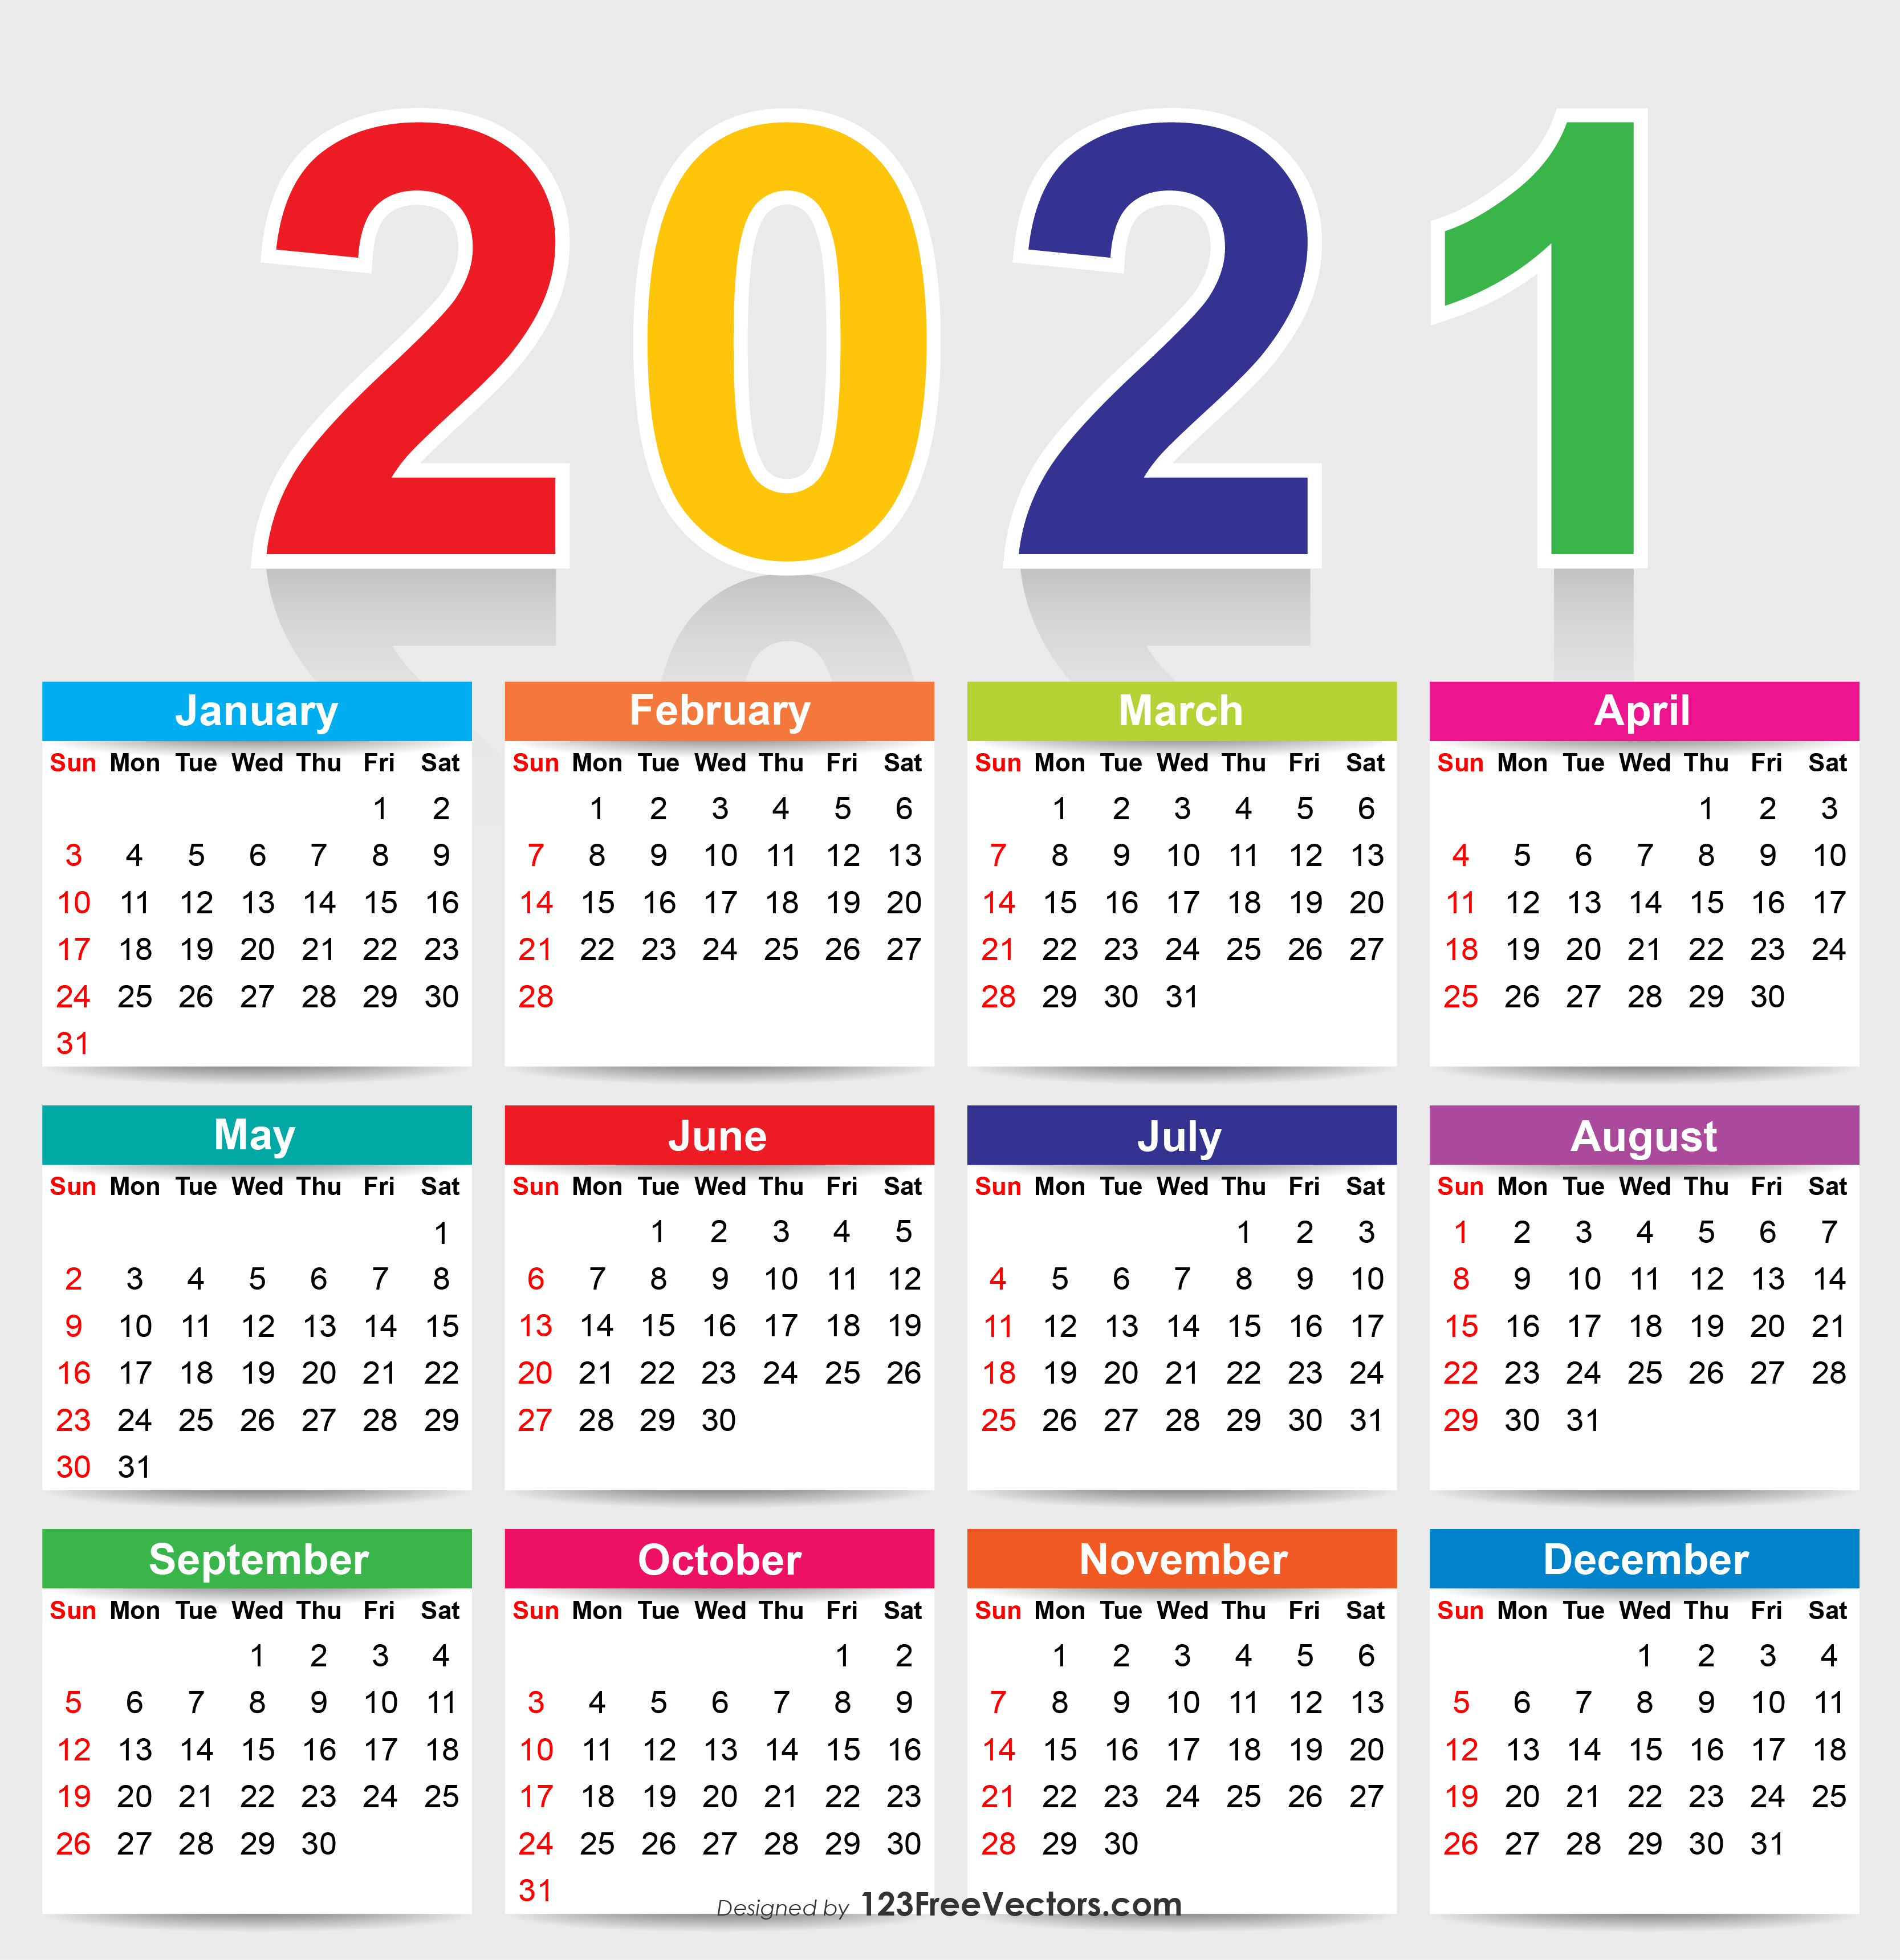 2021 Vector Calendar 210+ 2021 Calendar Vectors | Download Free Vector Art & Graphics